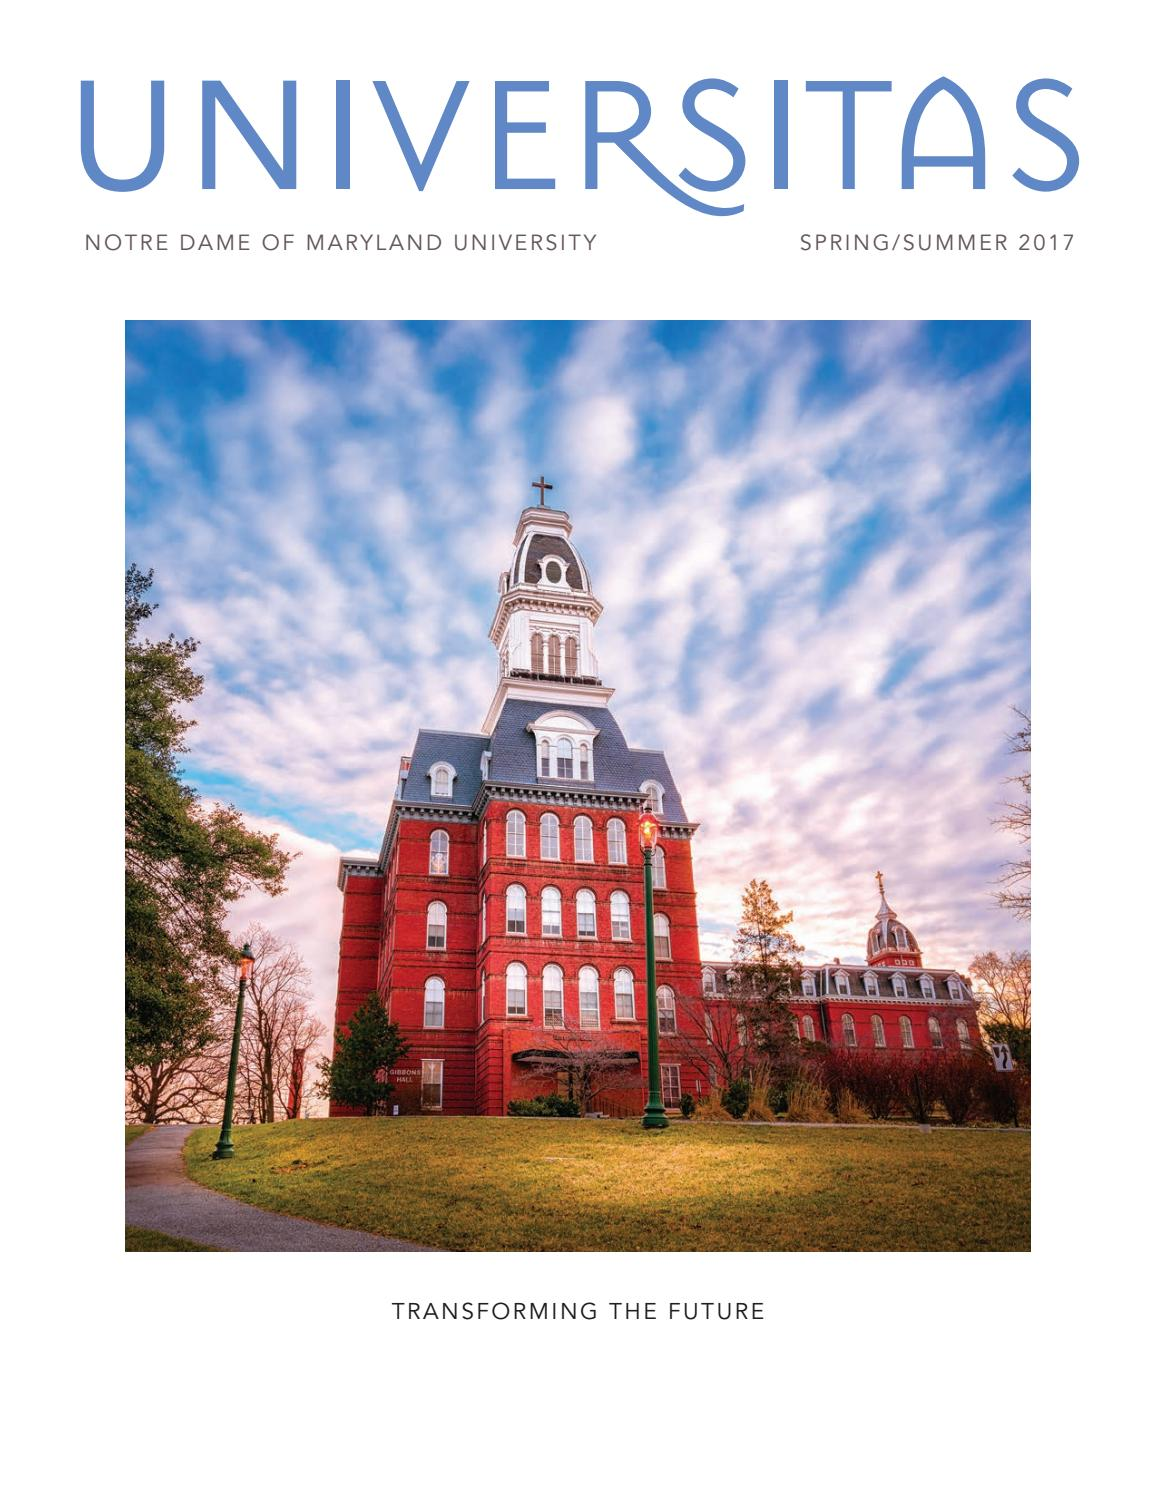 a place to call home by amy schisler reviews discussion a place called home book NDMU Universitas by Notre Dame of Maryland University - issuu